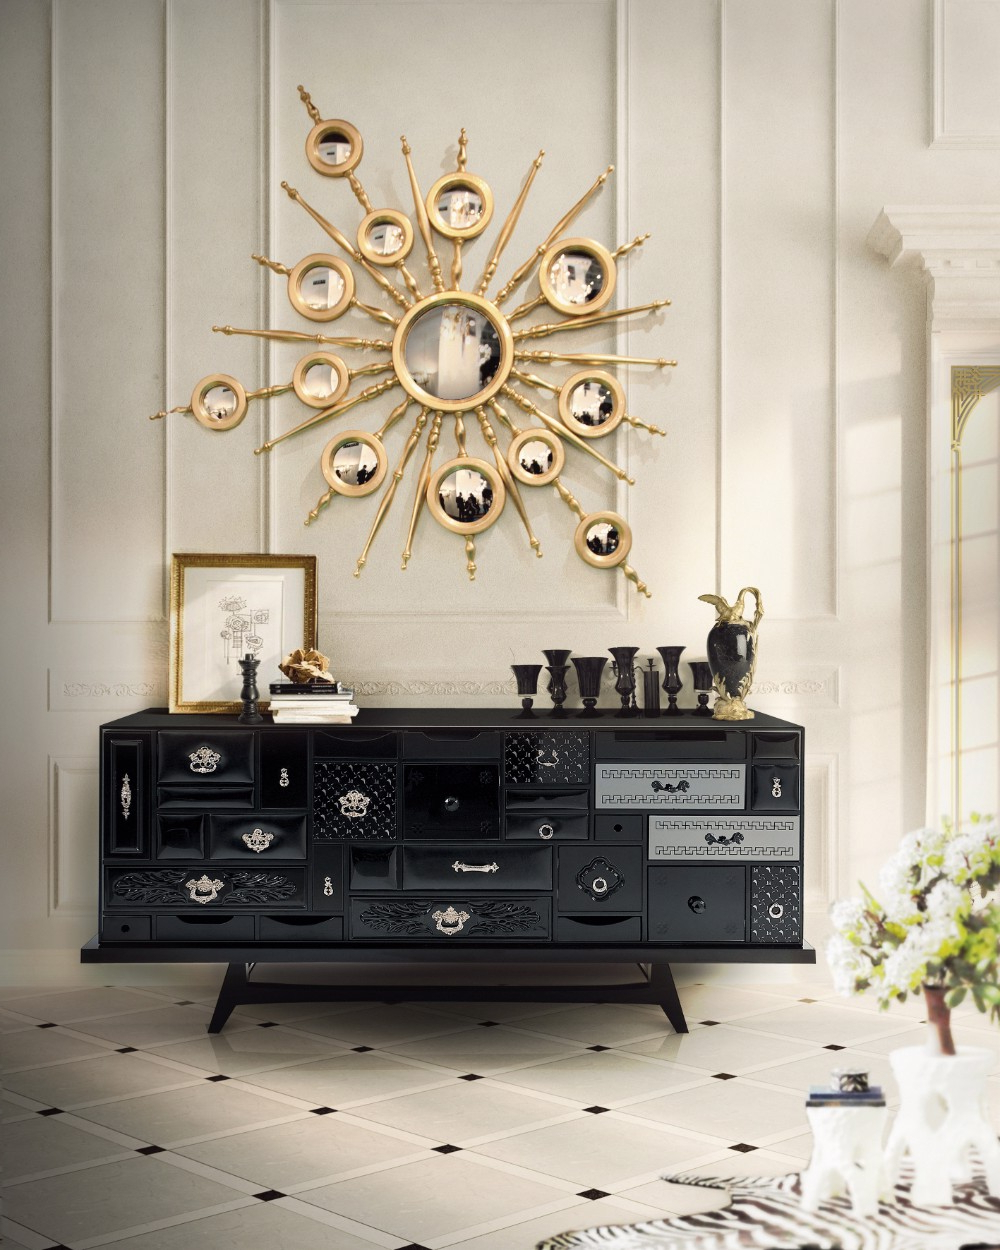 Current Wall Mirrors Designs With Regard To 20 Exquisite Wall Mirror Designs For Your Living Room (View 1 of 20)